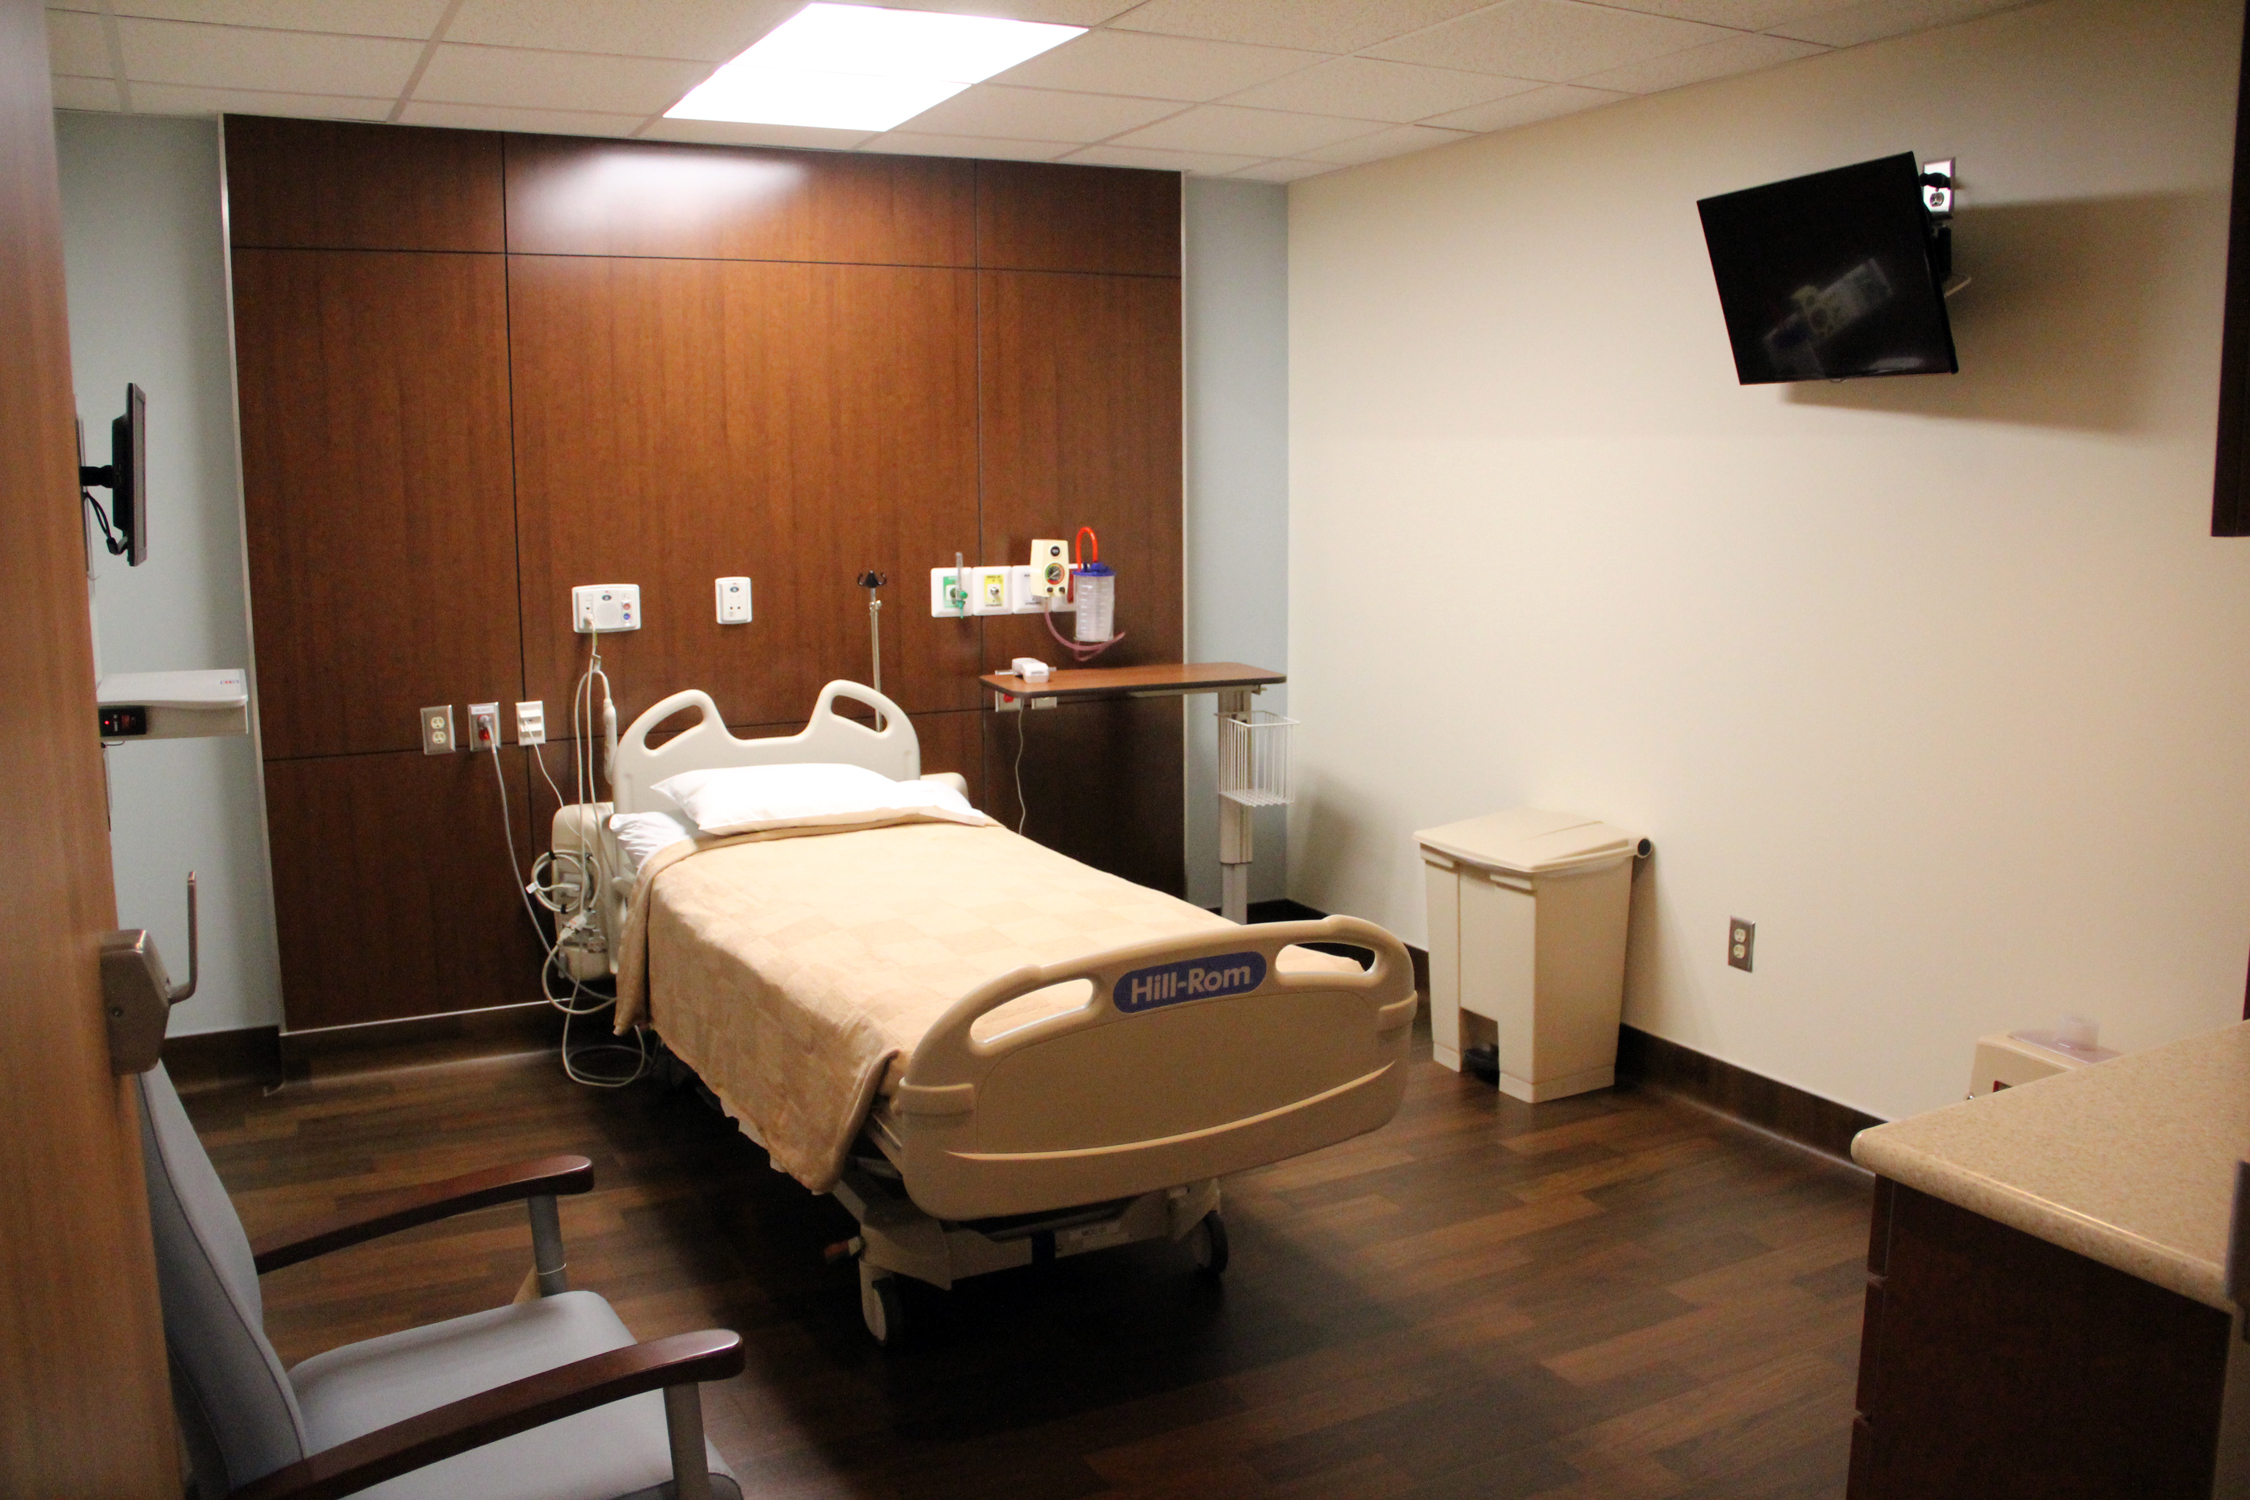 Room with an empty, neat hospital bed